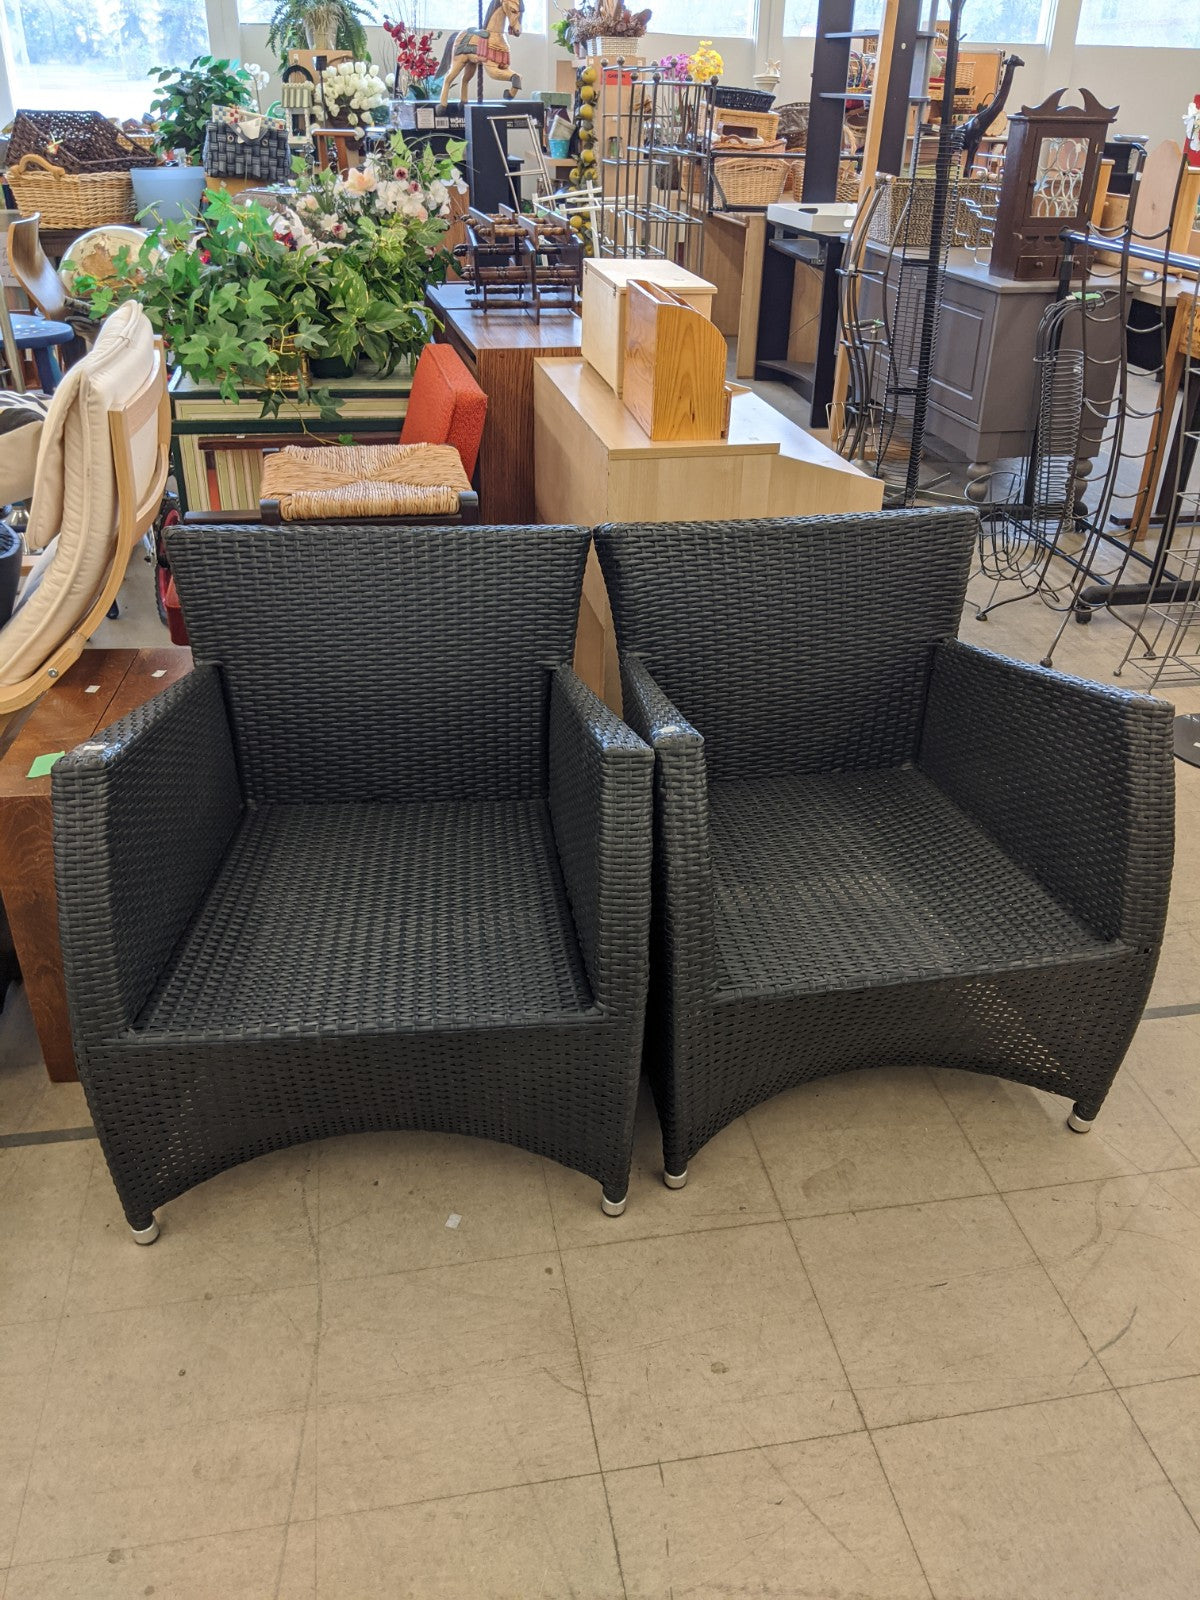 Patio chairs (2)